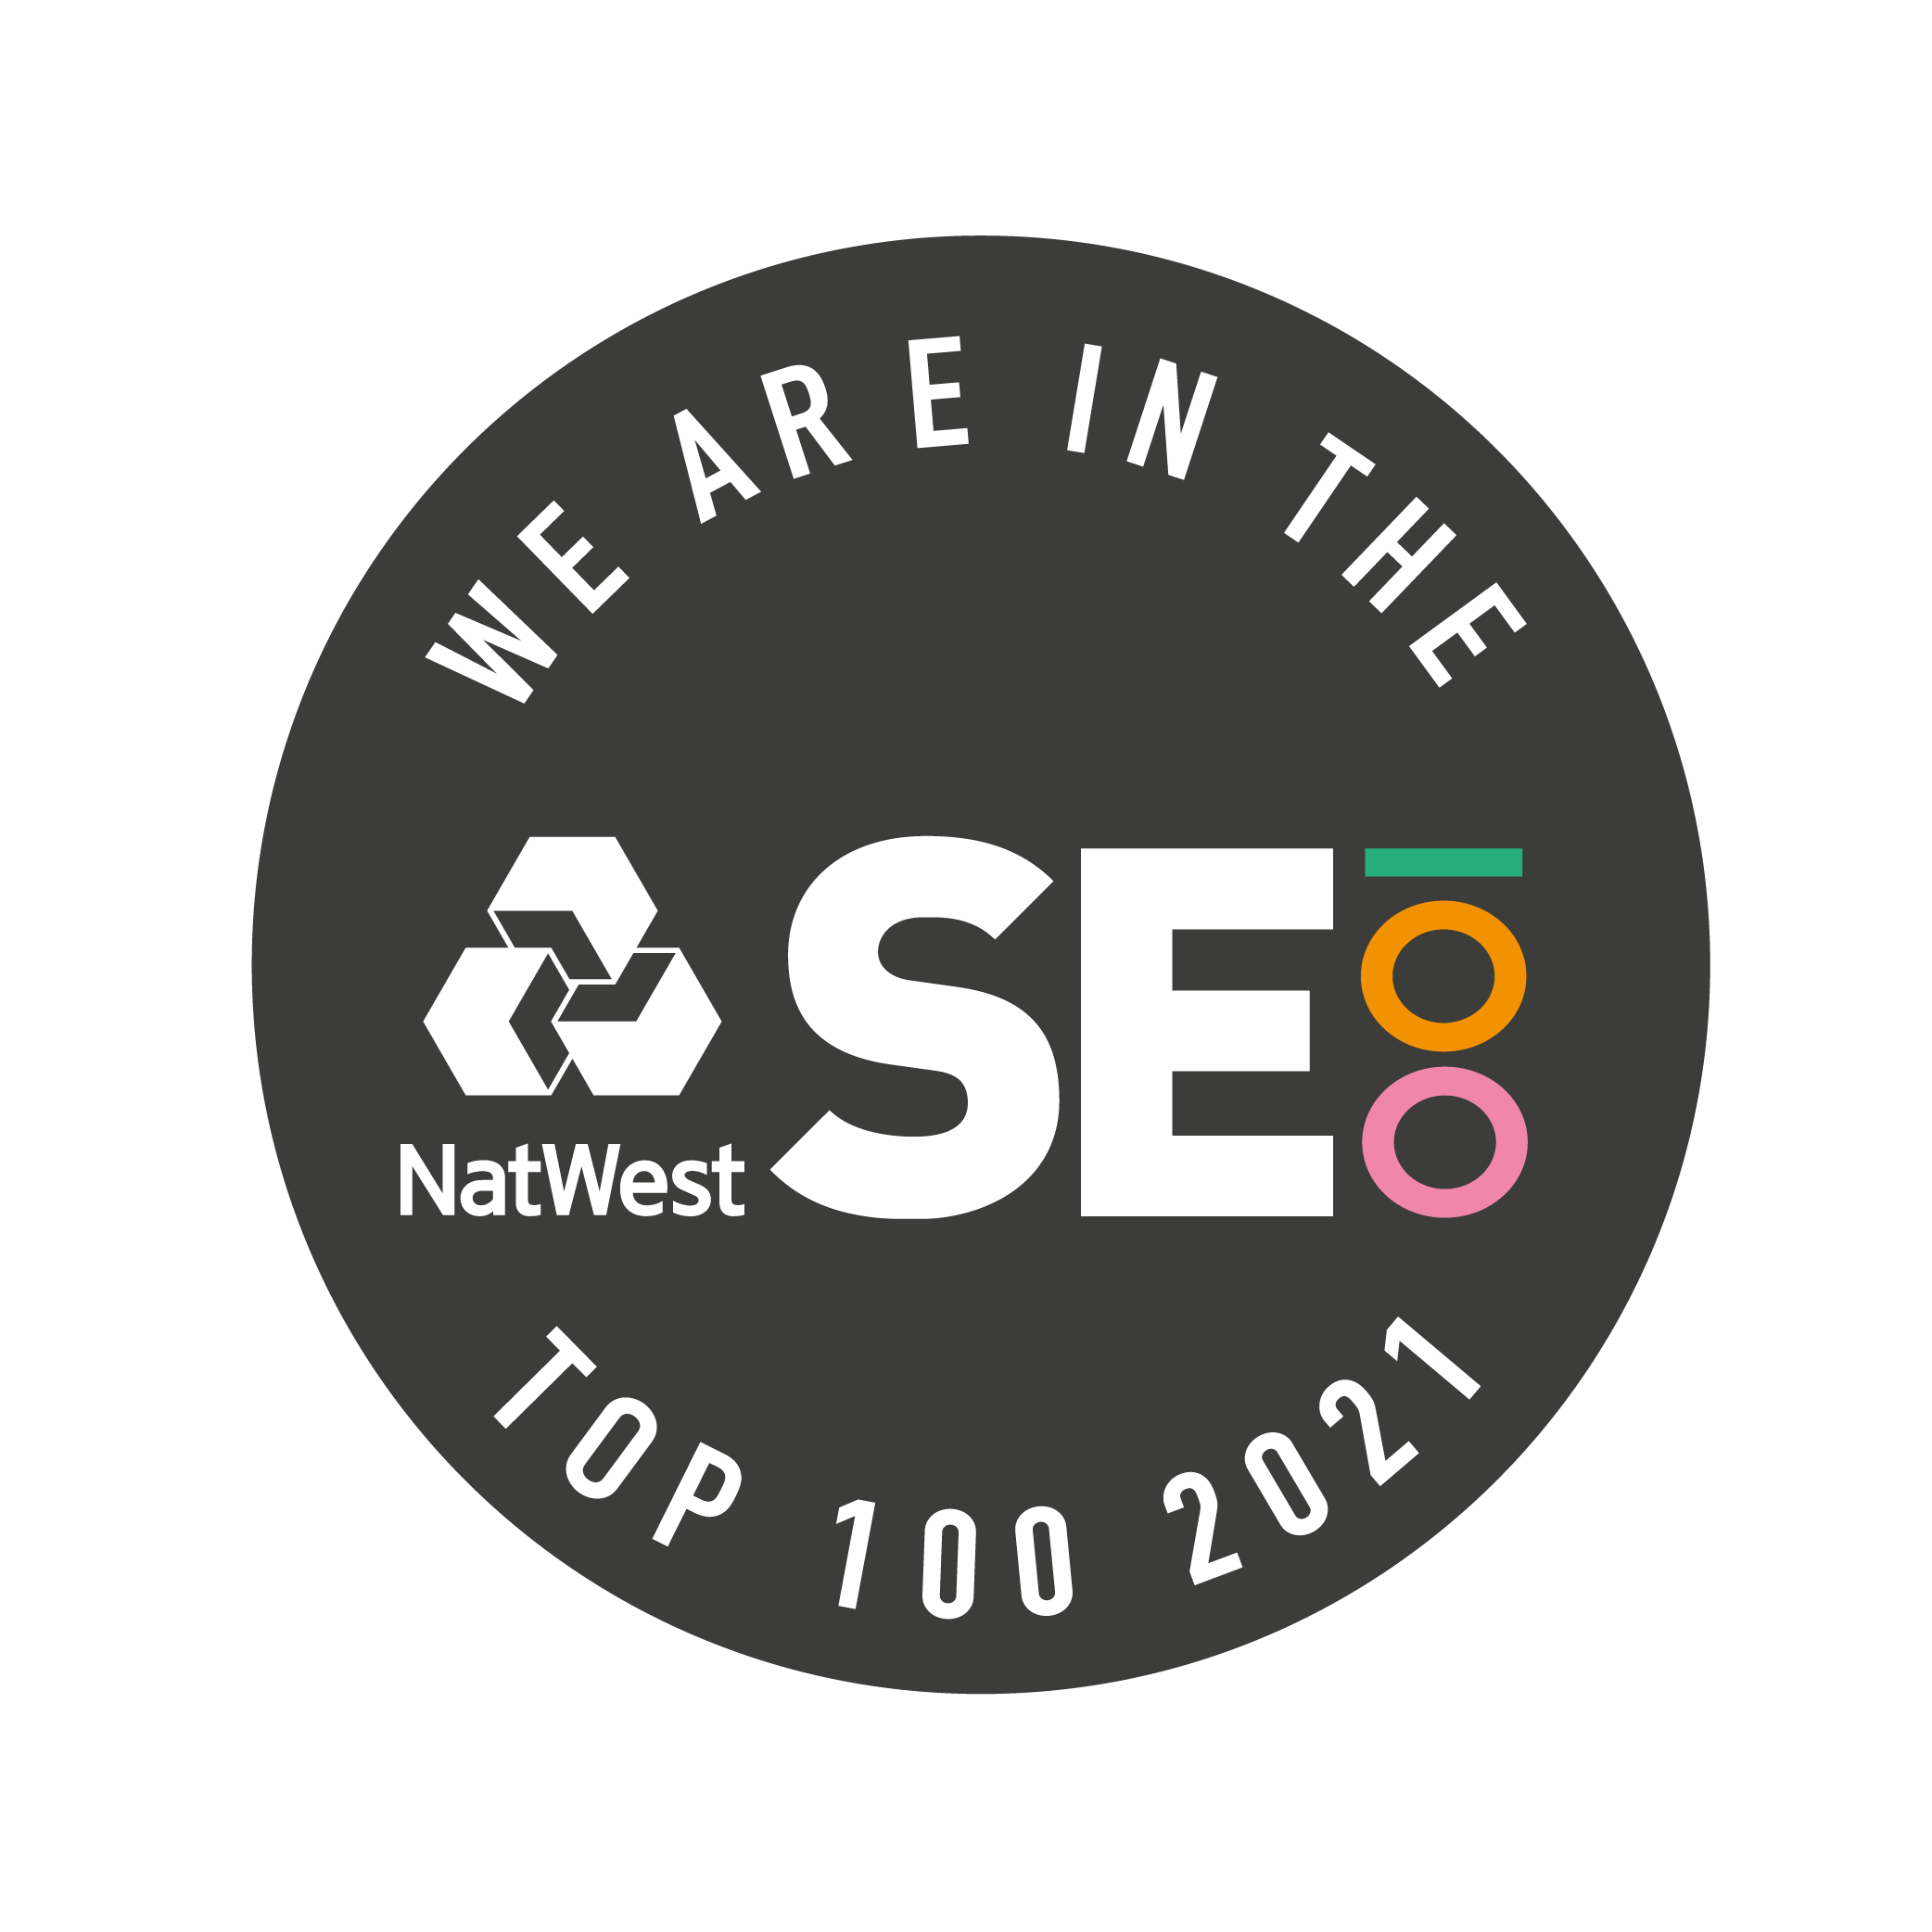 Ultra recognised as one of the Top 100 Social Enterprises in the UK!